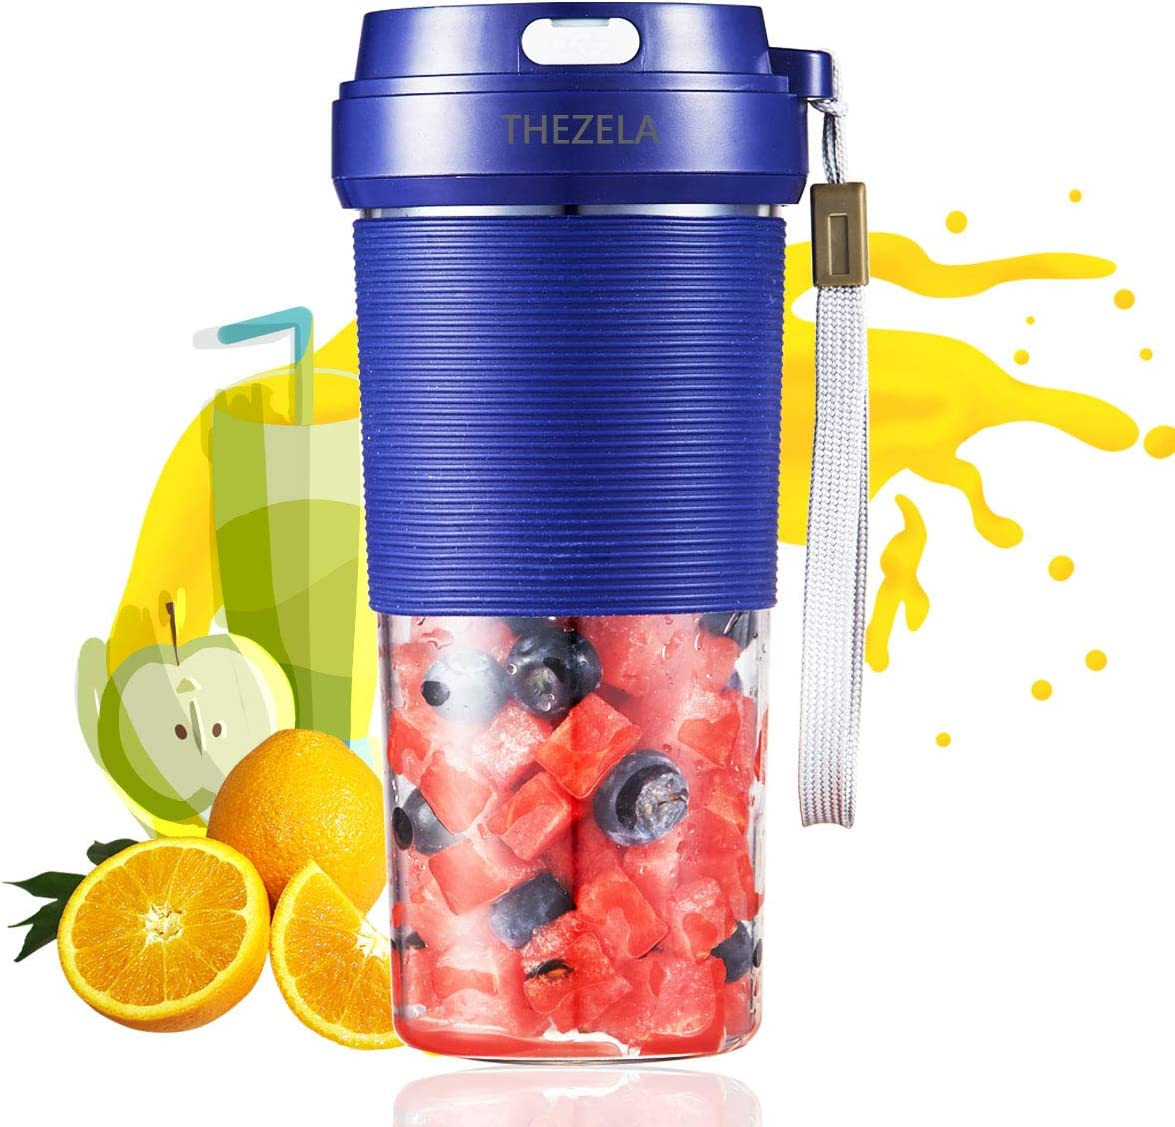 portable blender usb rechargeable,Cordless mini Personal Blender Small shakes Smoothie Fruit Juice Blender cup,for Home Outdoor Travel Office,Waterproof, BPA Free,10oz (blue)